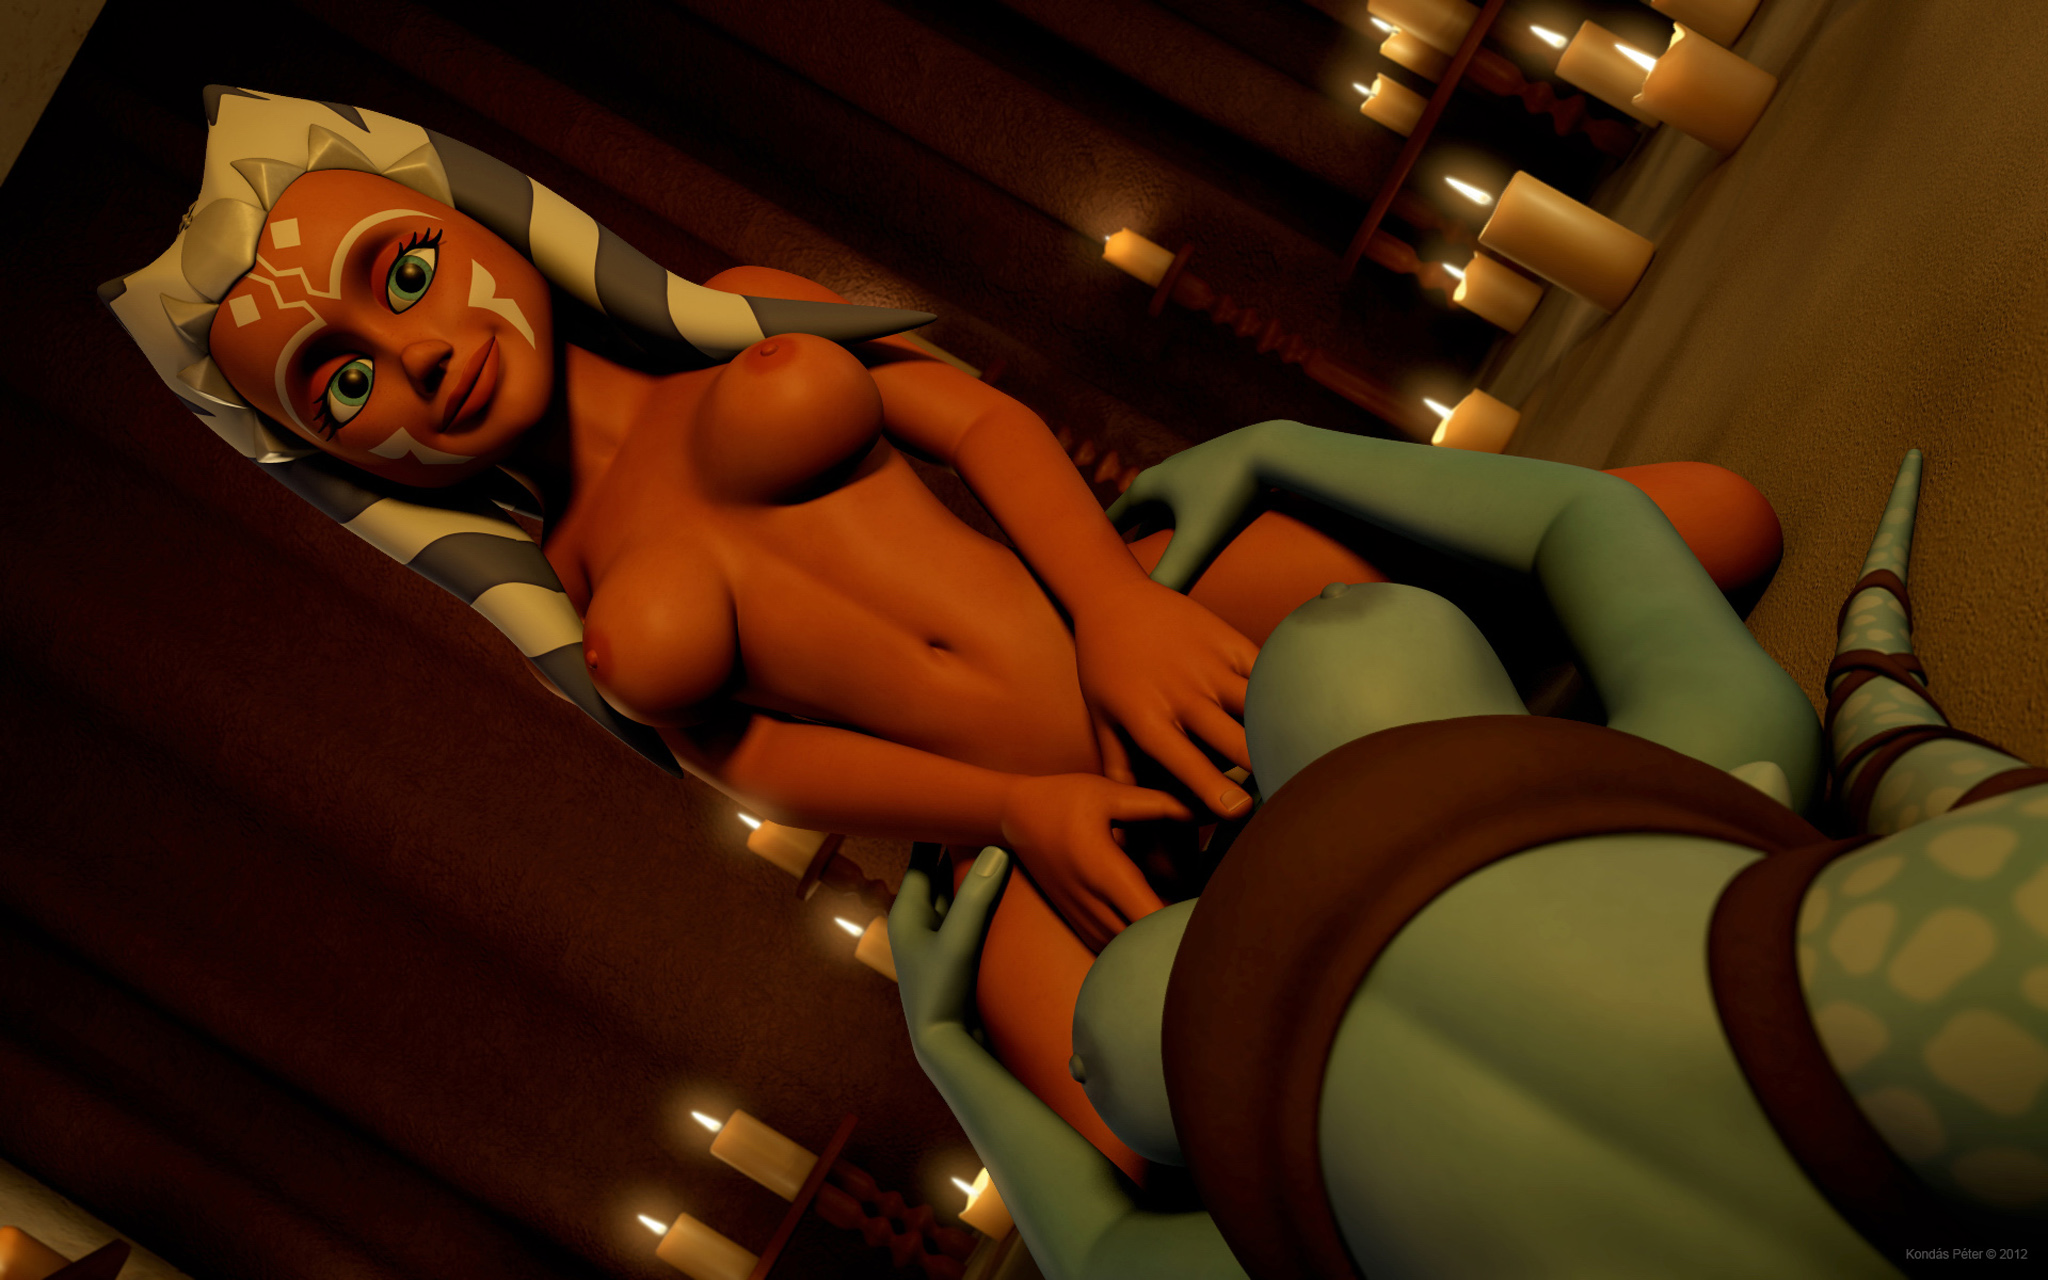 Star wars sexy ahsoka tano porn question good